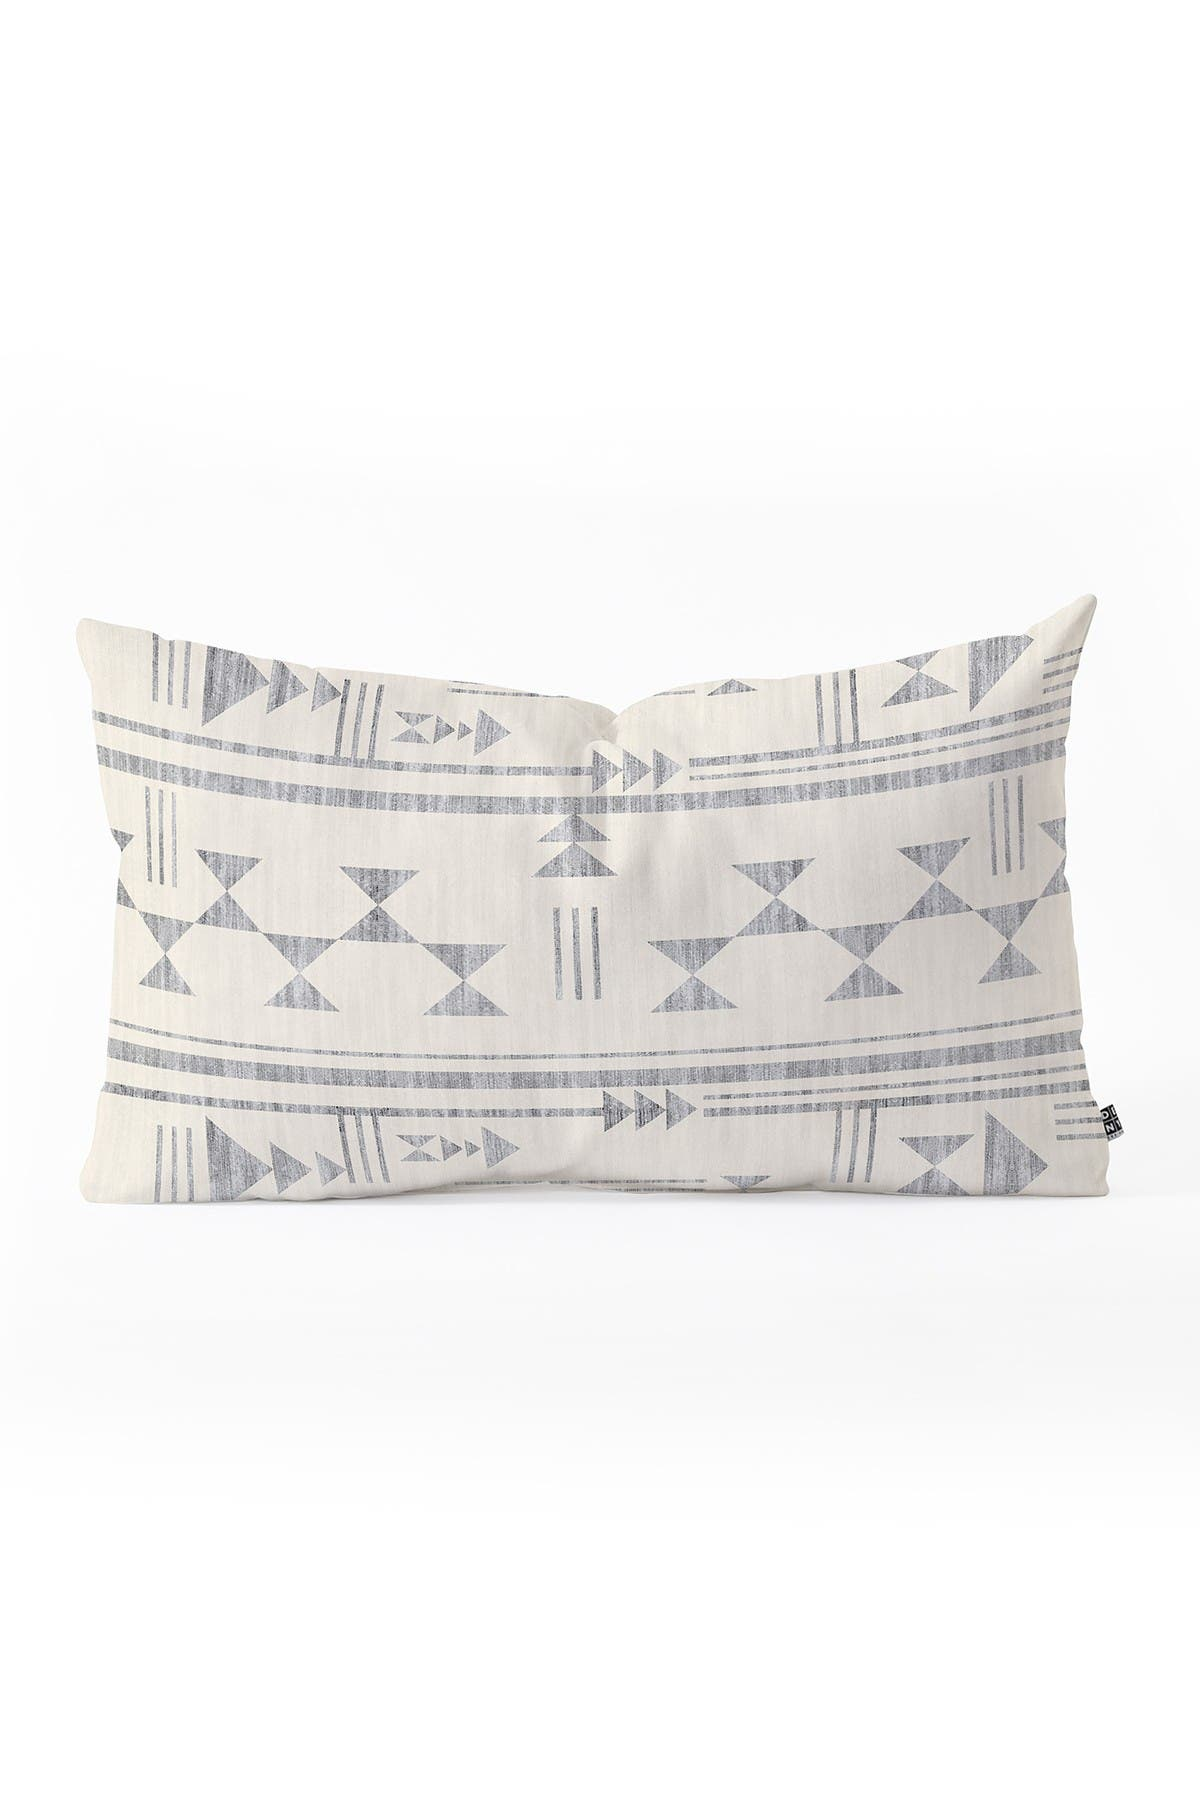 Image of Deny Designs Holli Zollinger Indio Oblong Throw Pillow